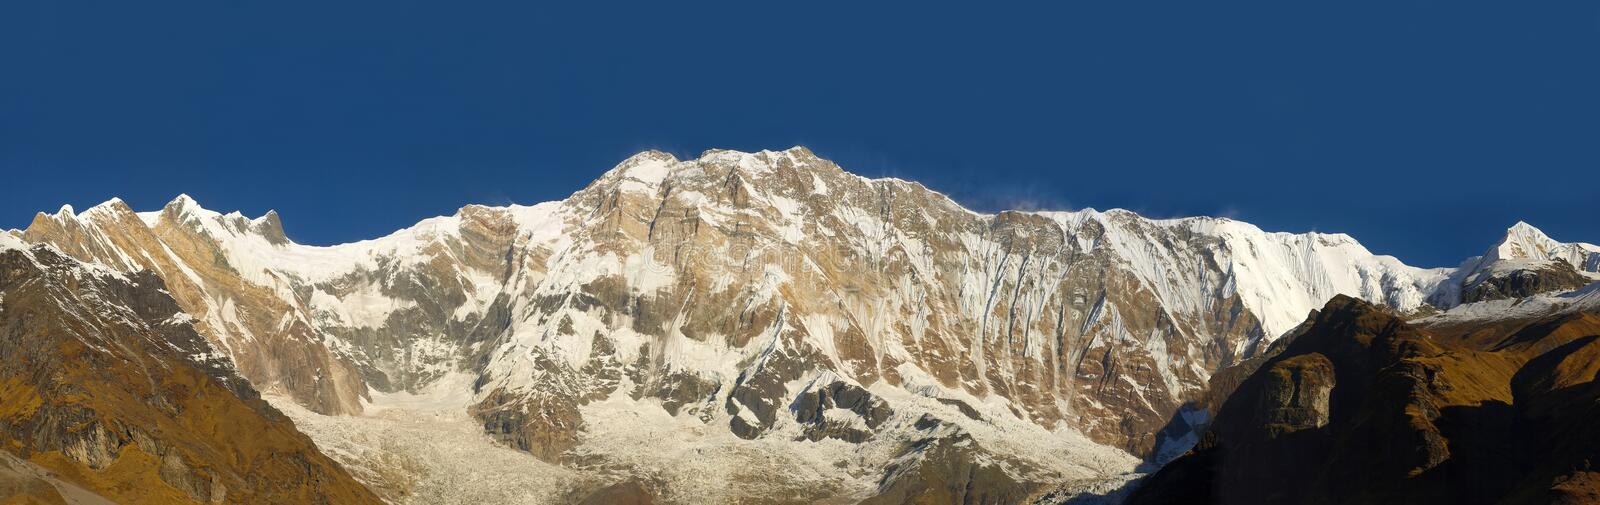 Panorama of the south face of Annapurna I Mountain royalty free stock photos